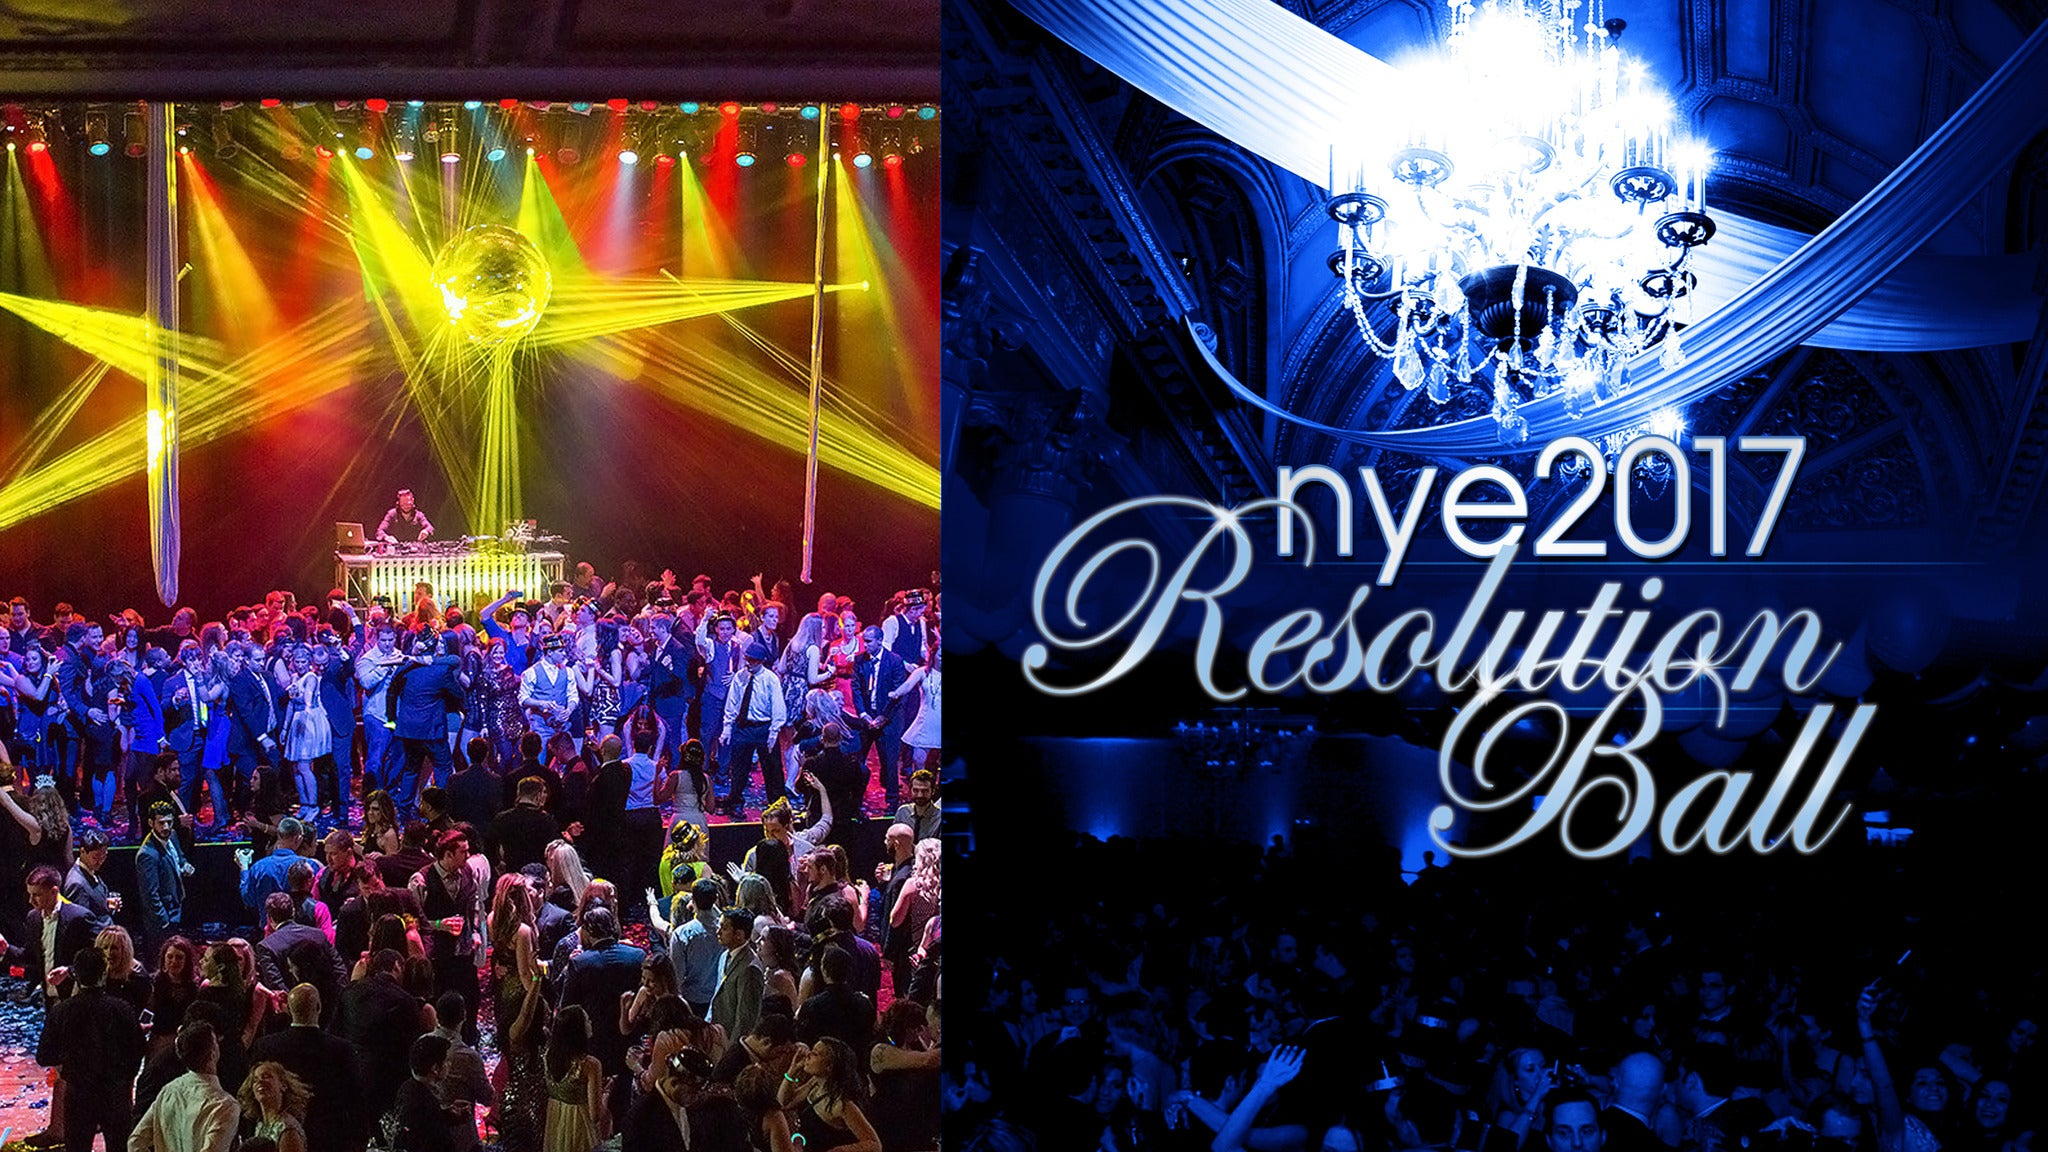 New Year's Eve Resolution Ball at The Fillmore Detroit - Detroit, MI 48201